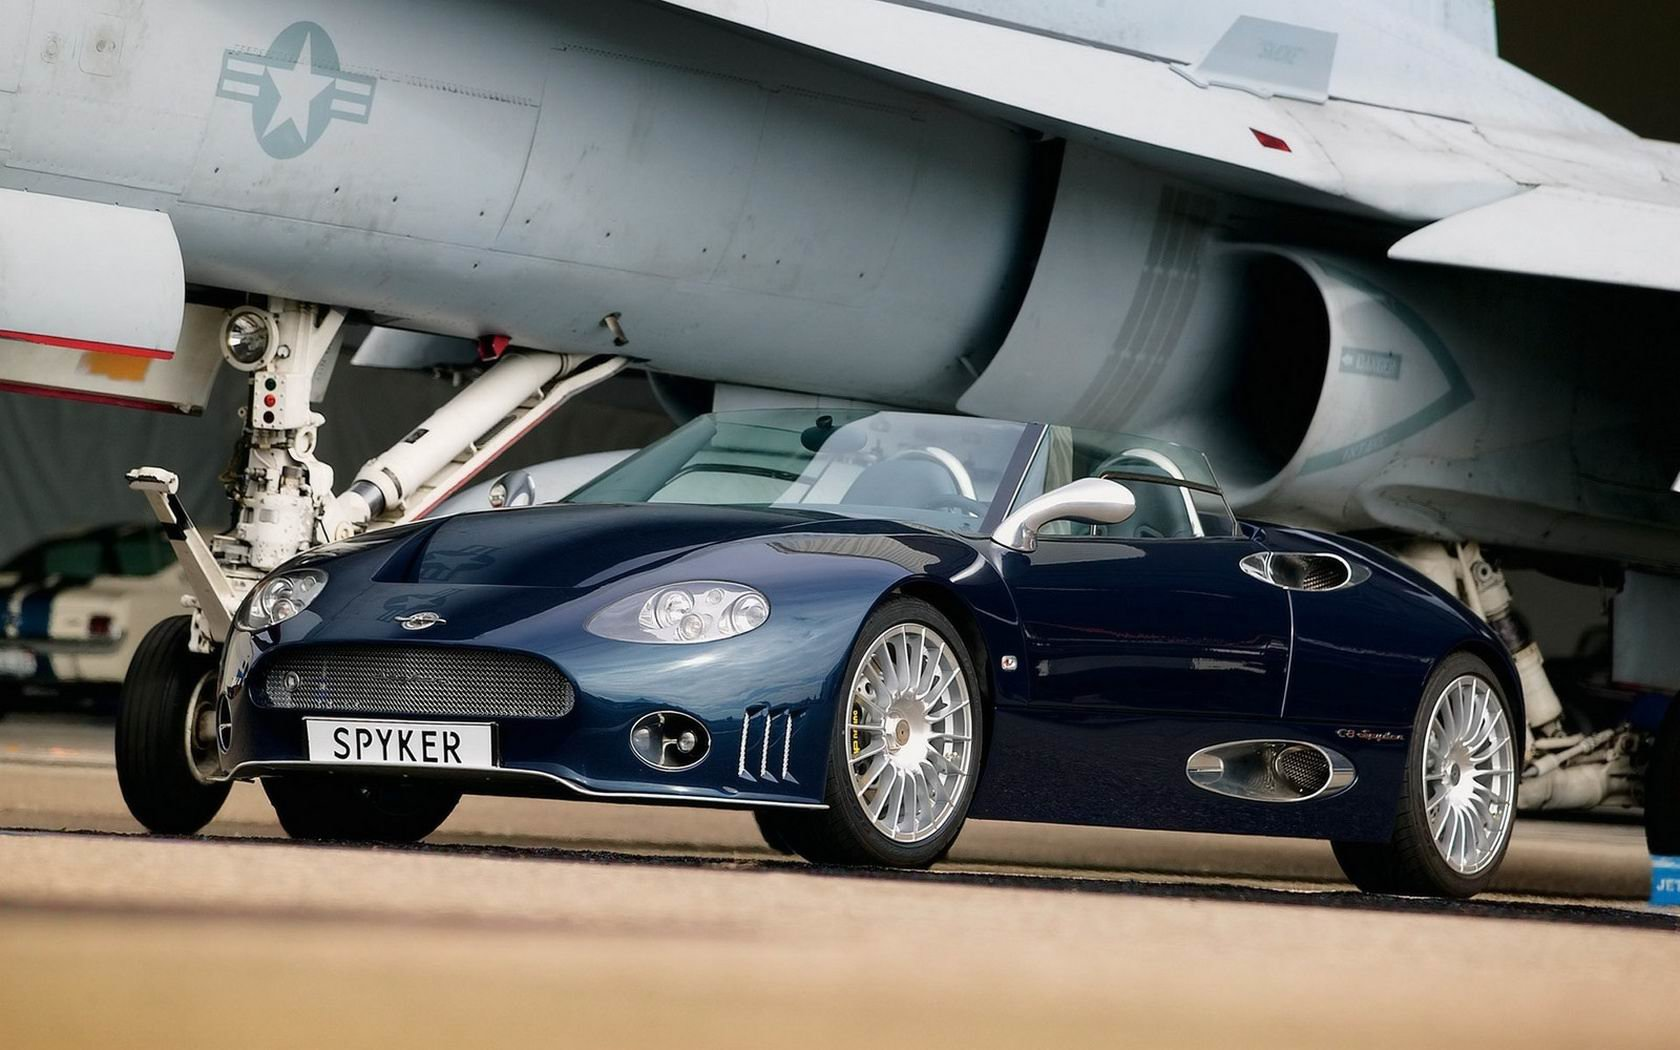 Free download Spyker background ID:433262 hd 1680x1050 for PC